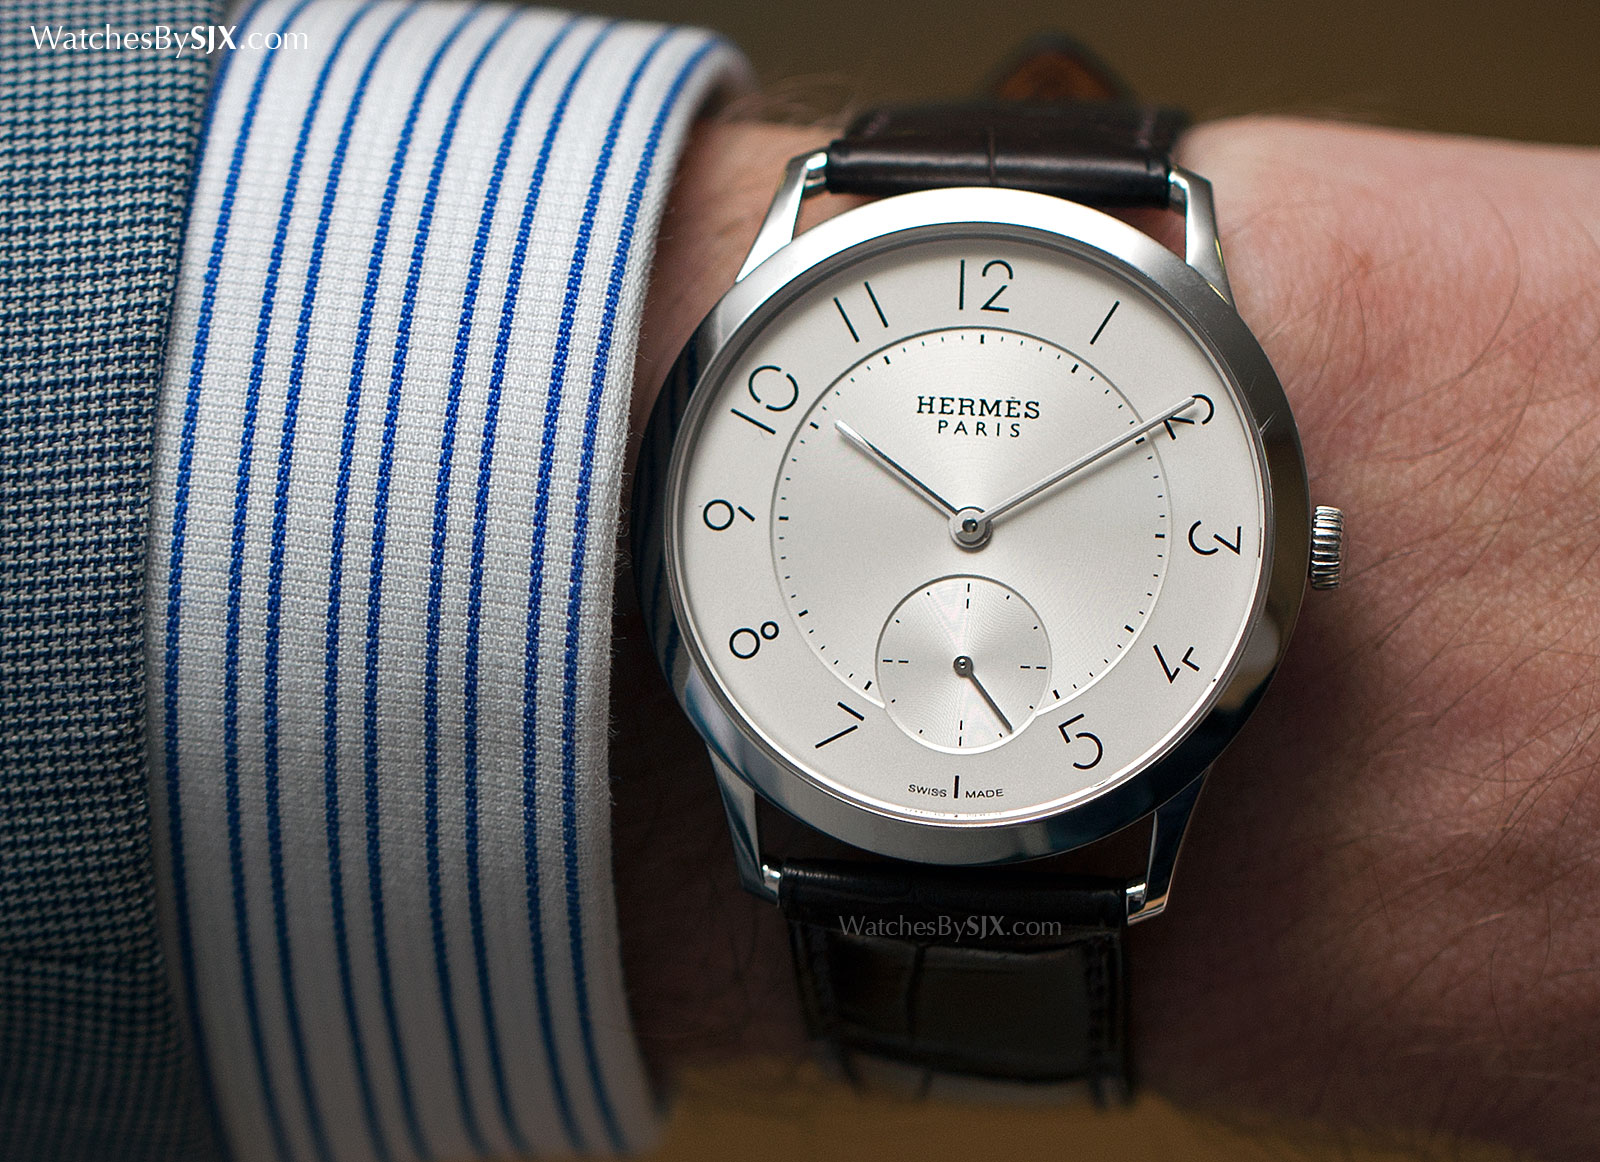 watches by sjx up close with the slim d 39 hermes simple original and affordable with original